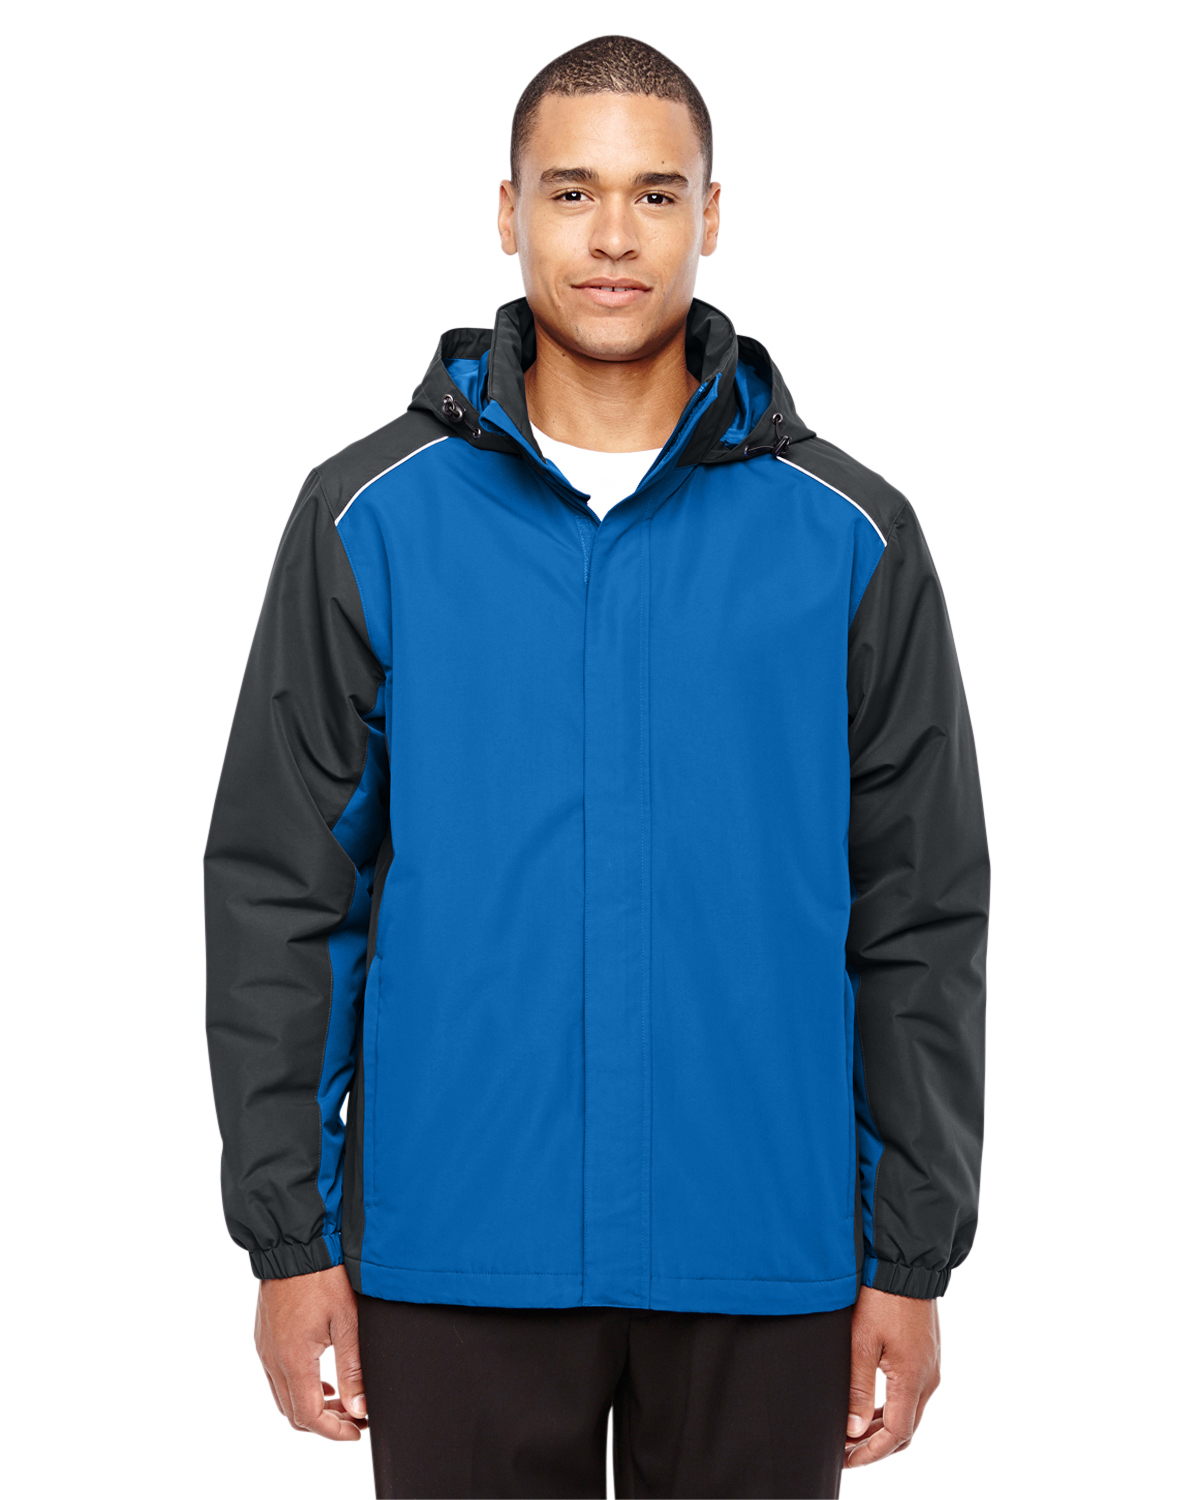 Ash City Core 365 - 88225 - Men's Inspire Colorblock All-Season Jacket